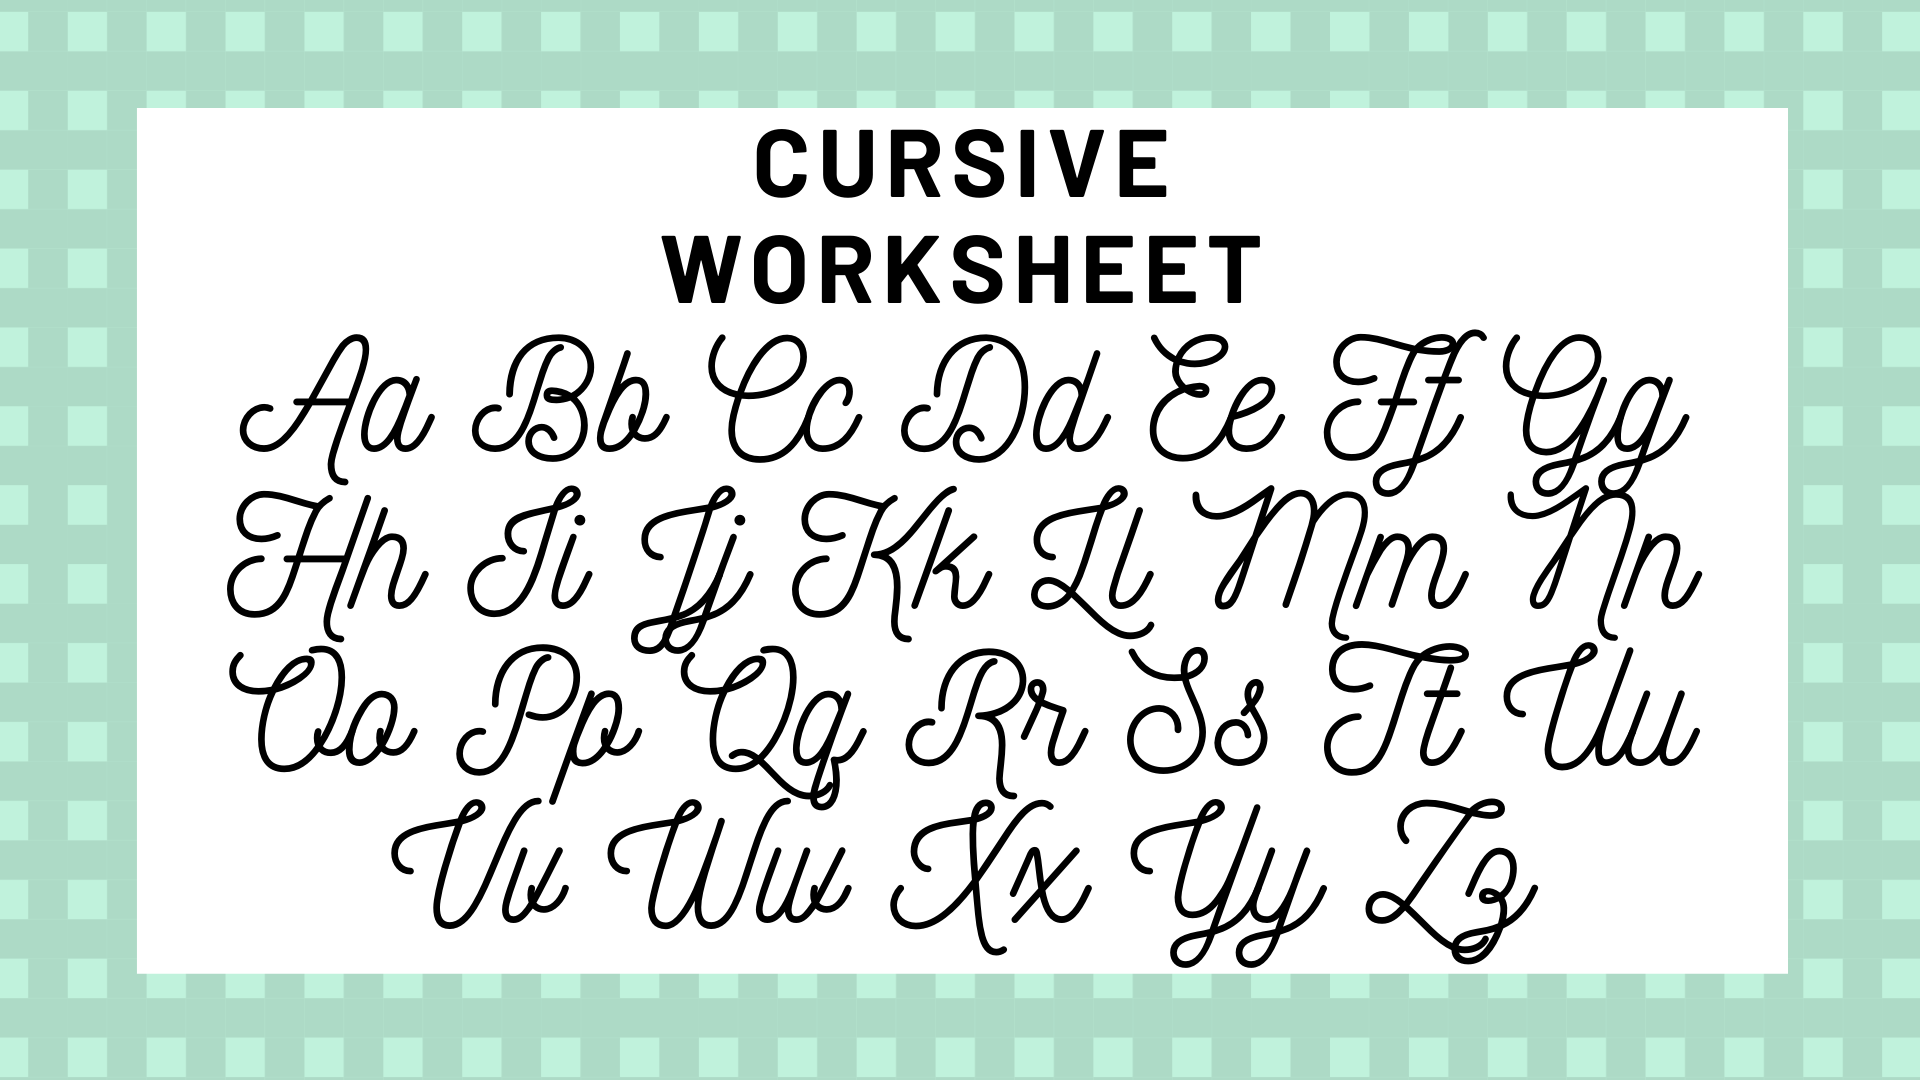 Worksheet ~ Cursive Alphabet Your Guide To Writing Science